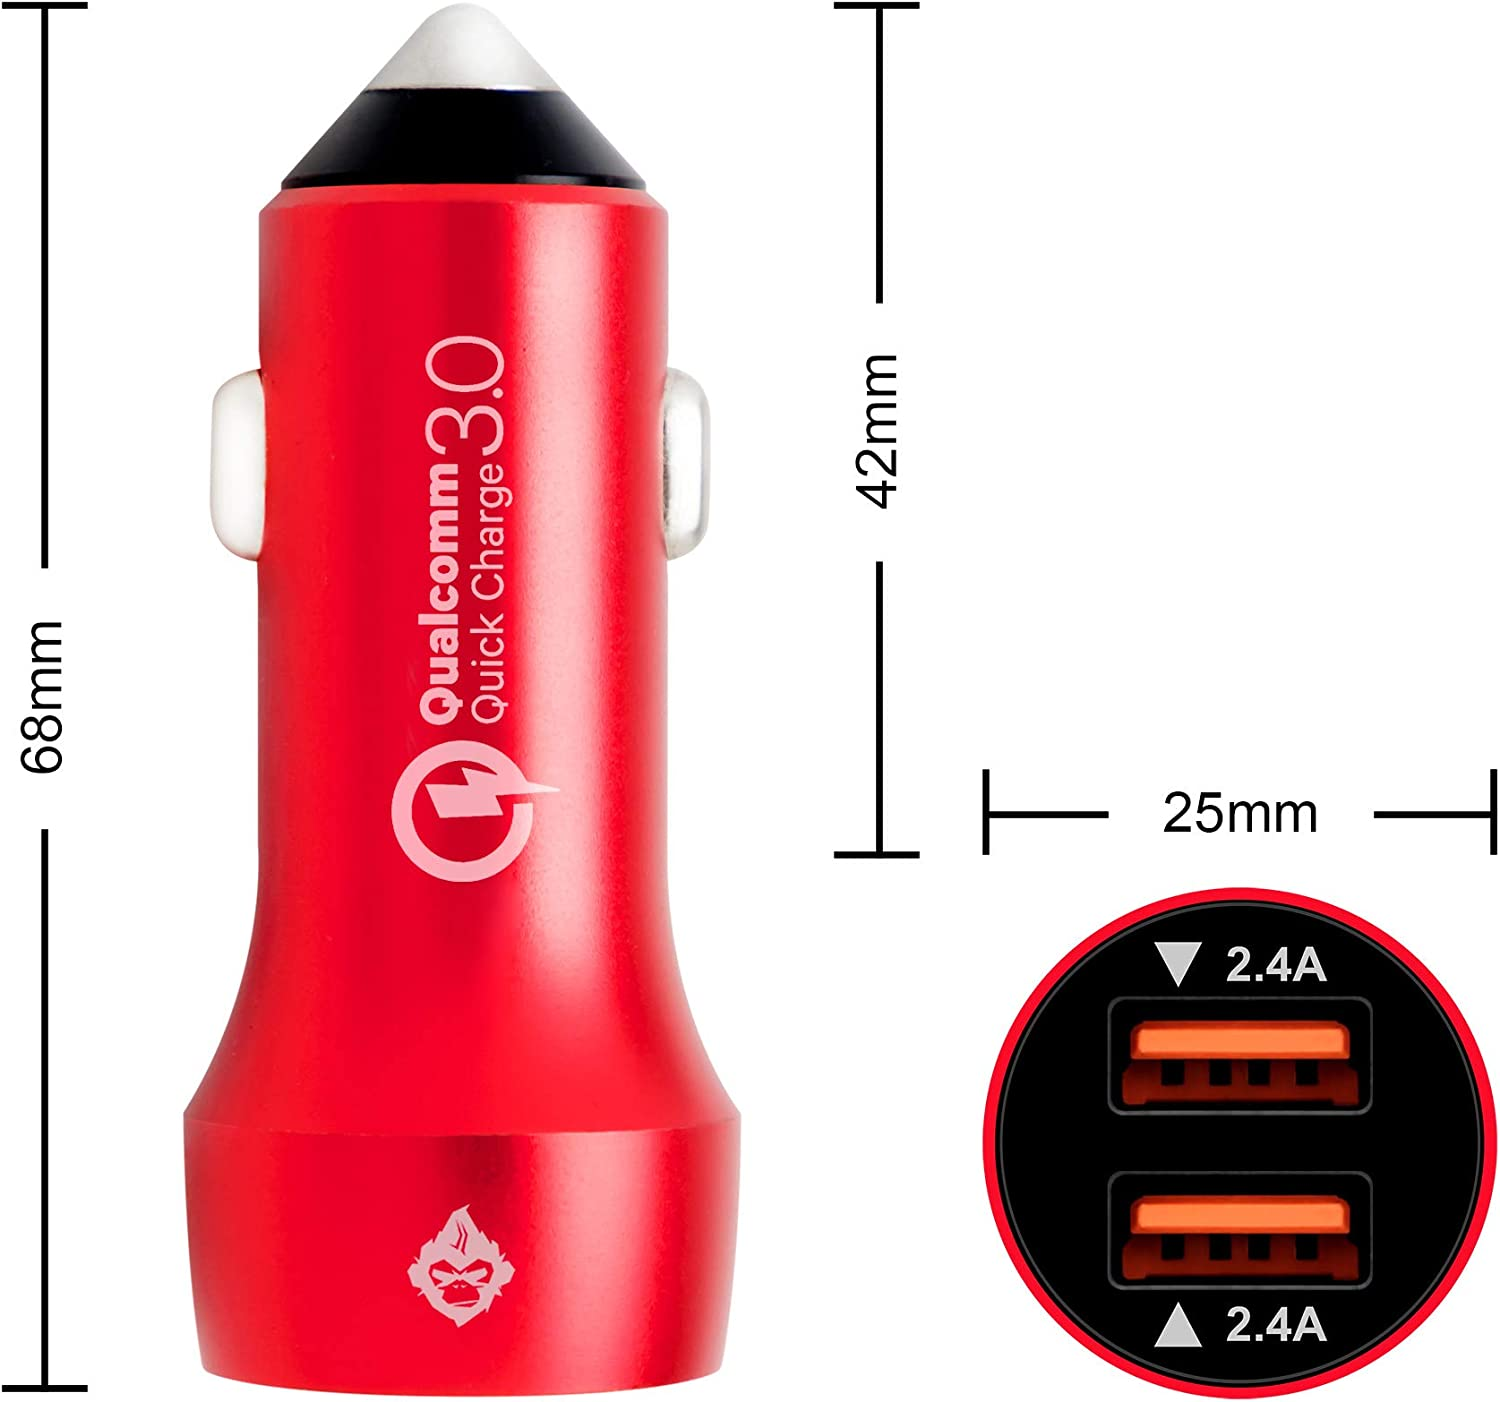 RED 3ft Silicone Fiber Ultra Durable Micro USB Cable Combo Xs XR X 8 7 6 Plus and Galaxy S9 S8 Plus S7 S6 Edge Note 8 and More Cyterus Aluminum 36W Dual USB Fast Car Charger